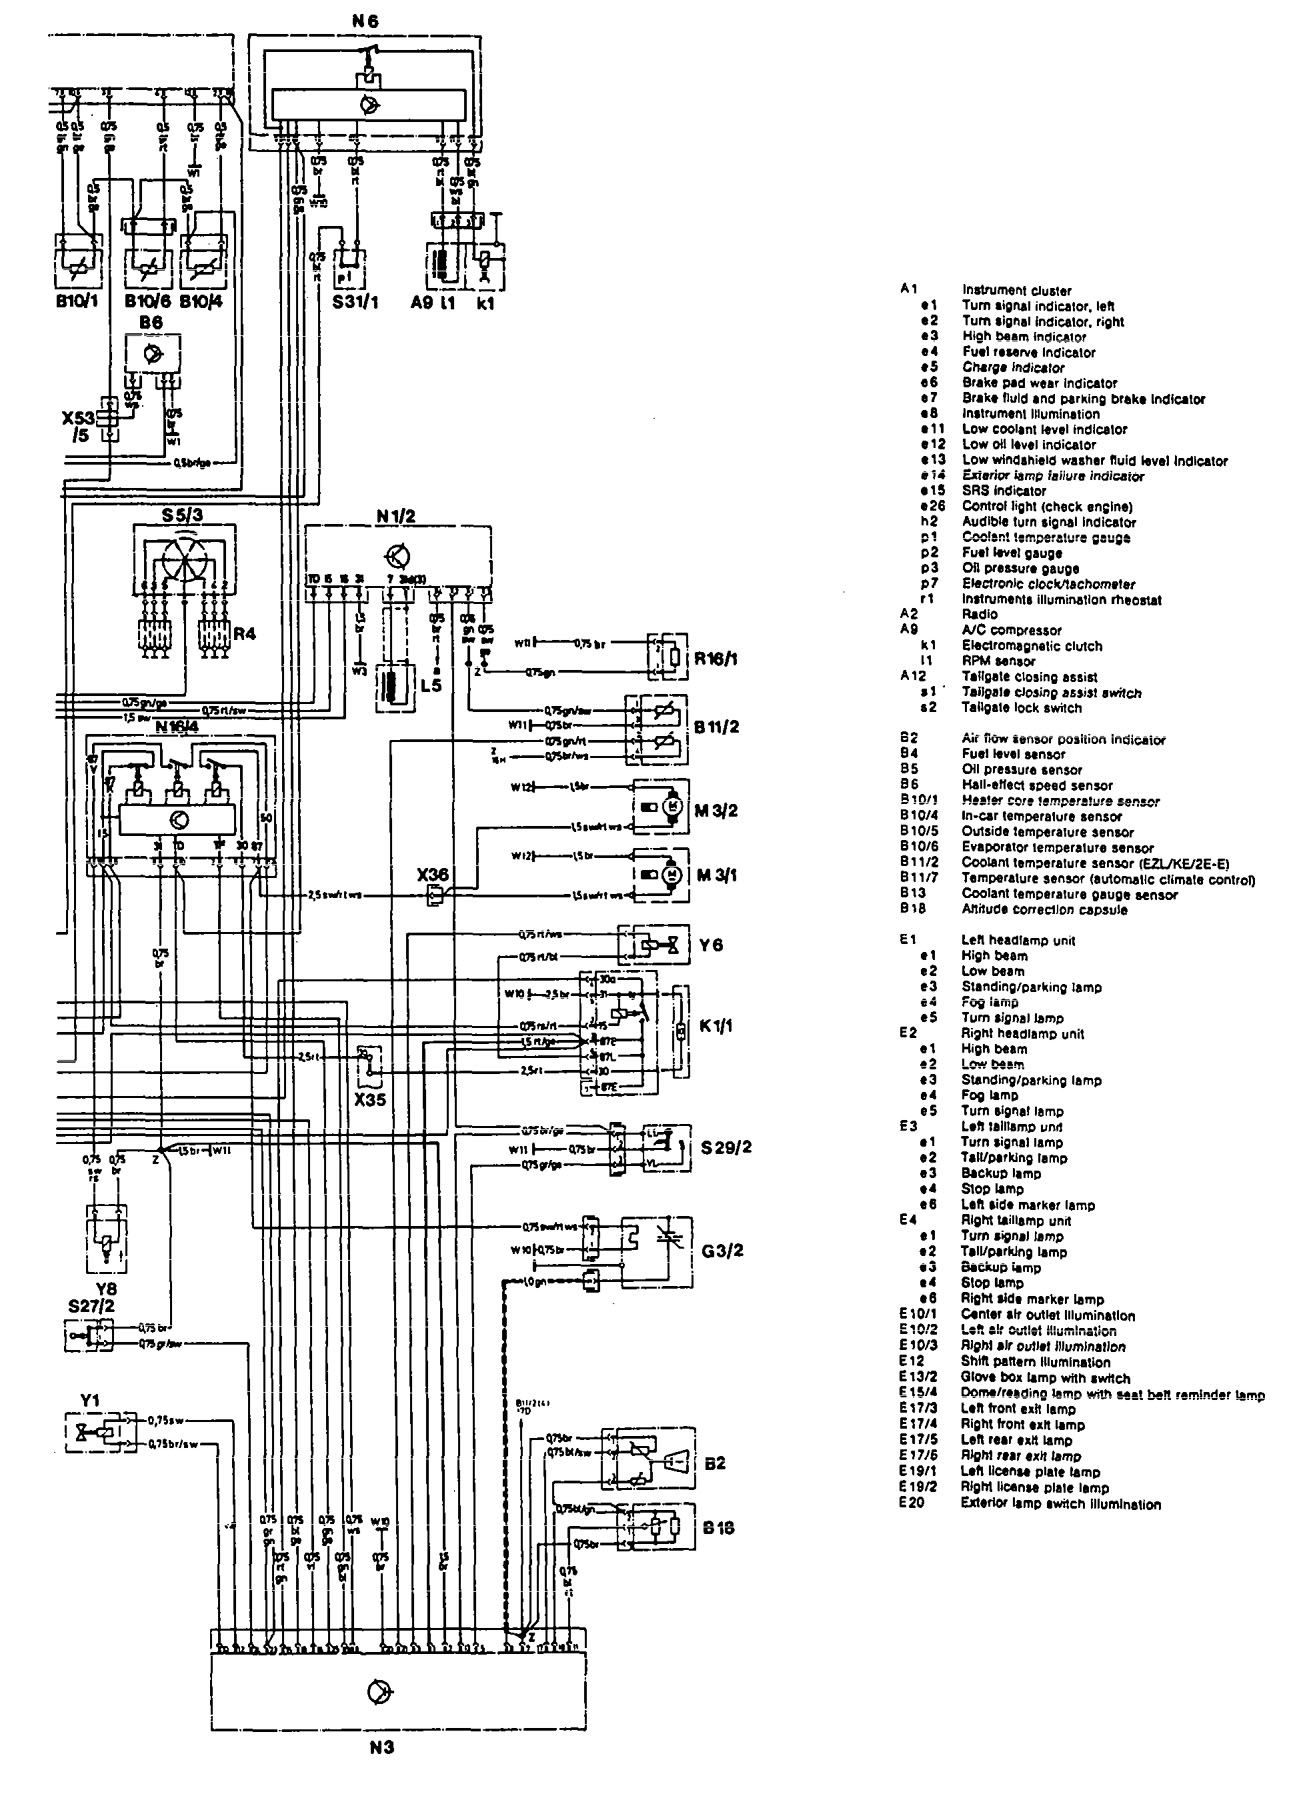 mercedes-benz 300te  1992  - wiring diagrams - ignition